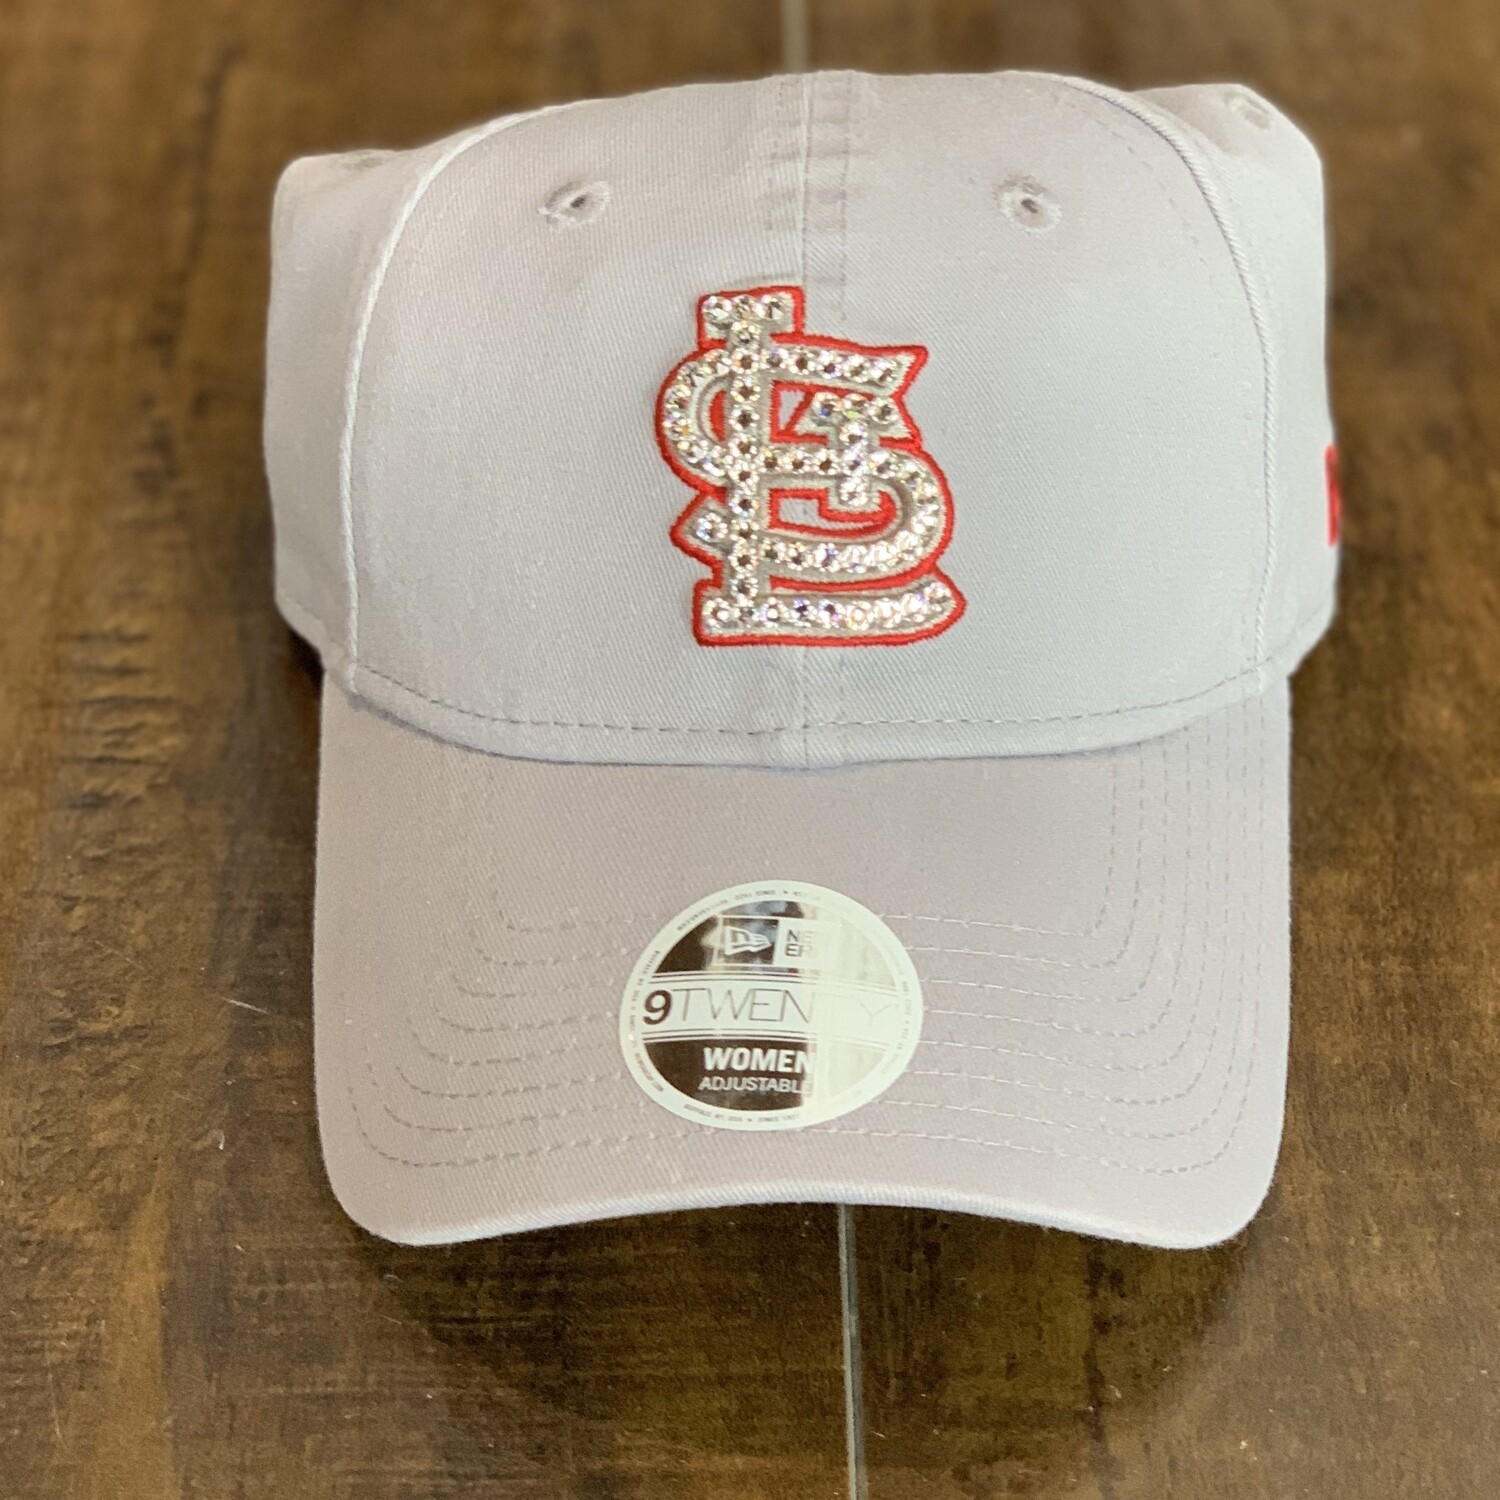 Lt. Grey New Era Hat W/ Clear Crystal